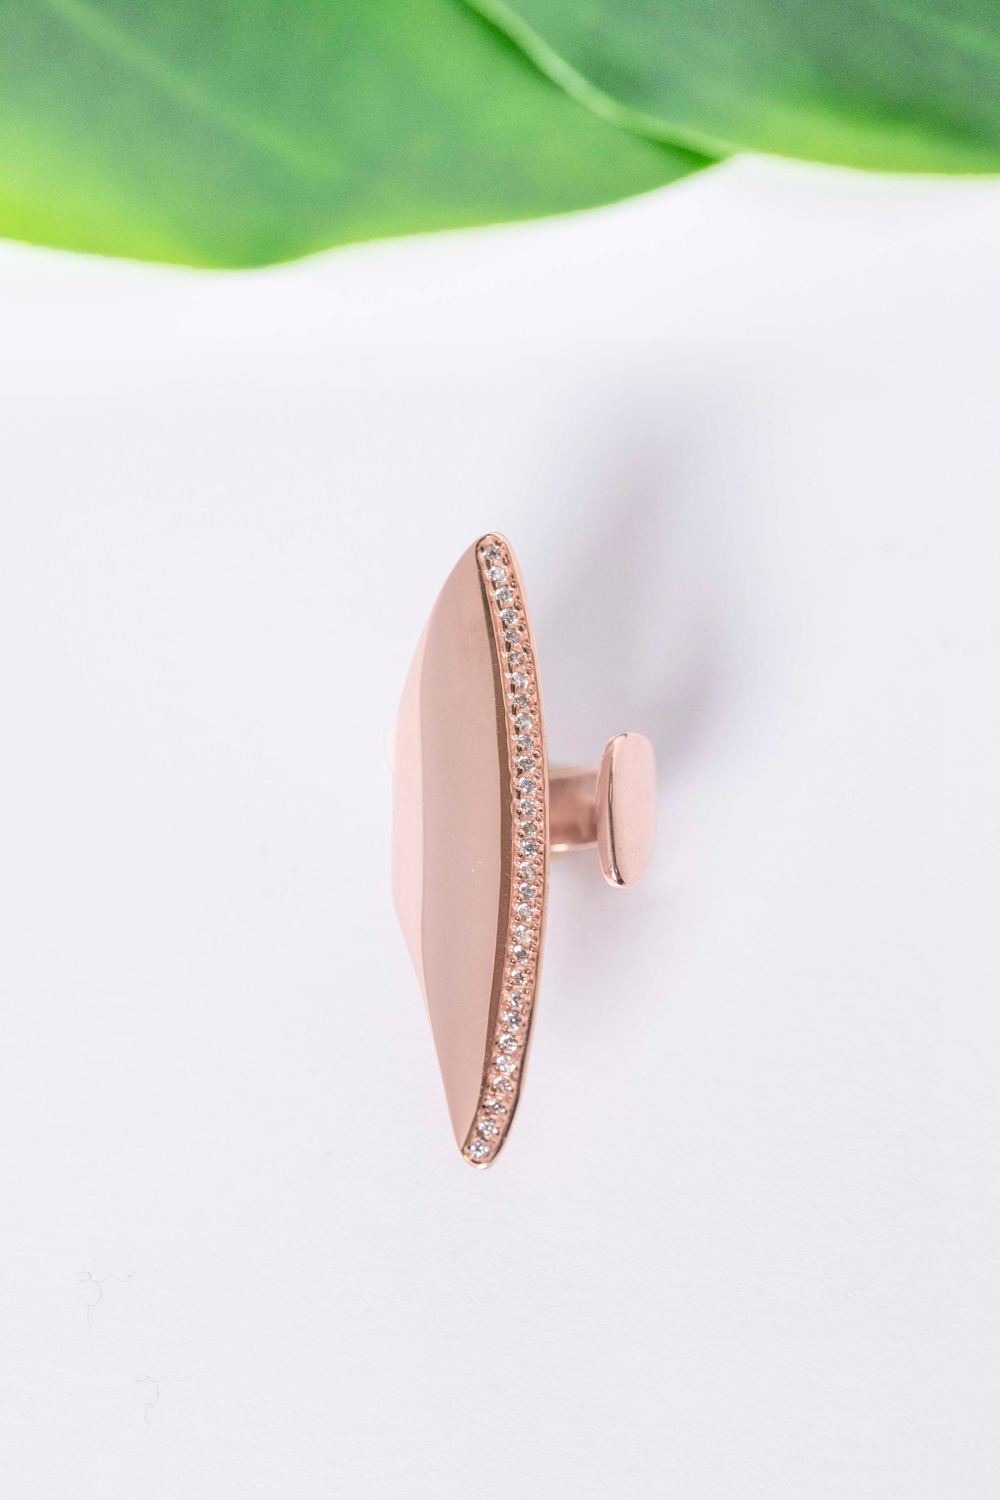 Pink Gold Chevalier, white stones, statement ring